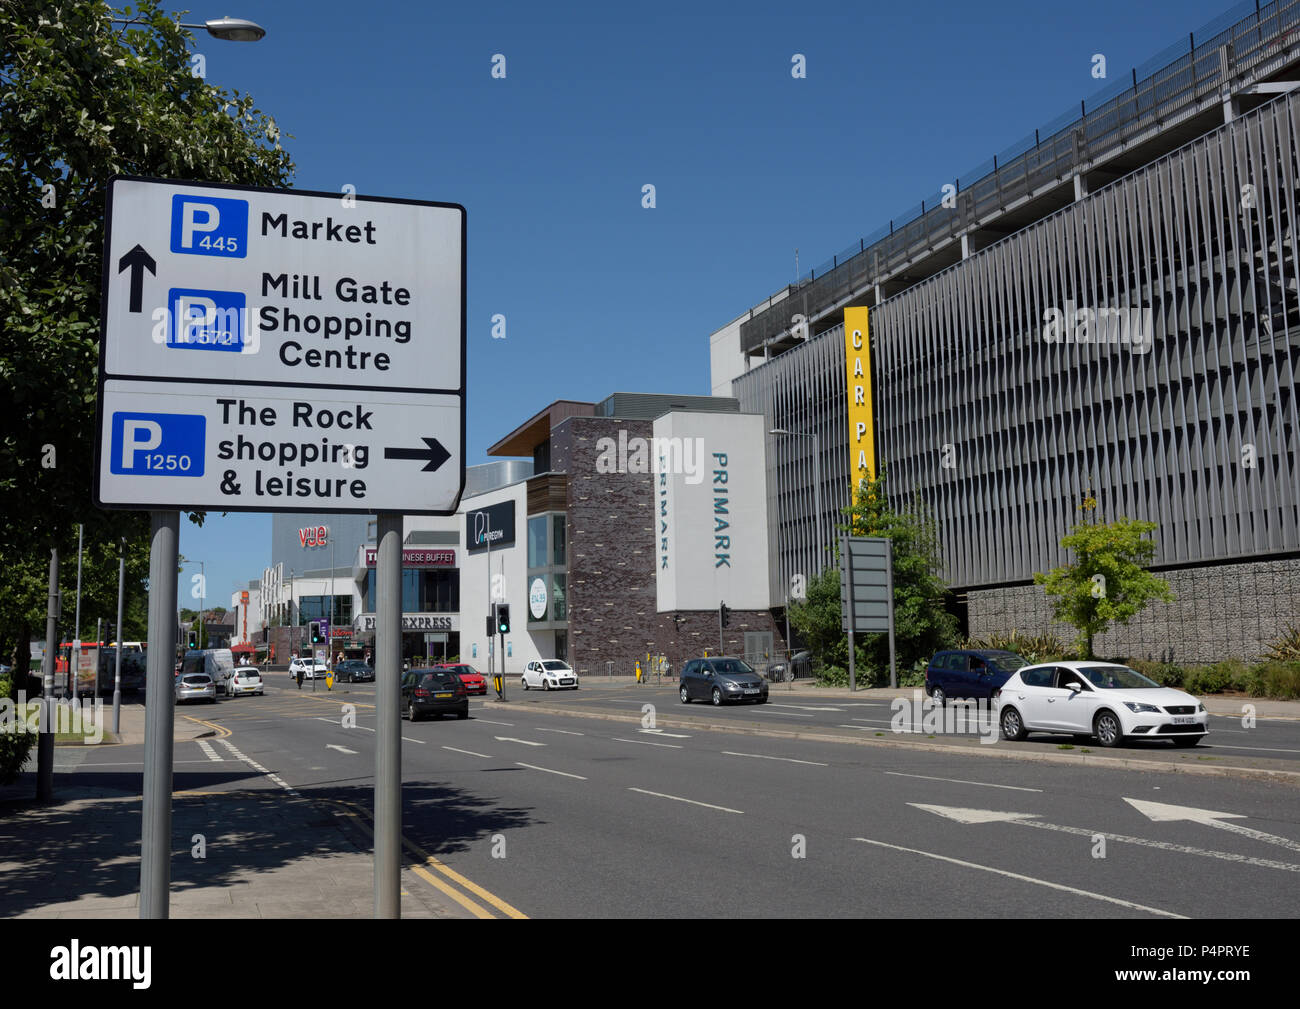 Road sign with directions for car parking at the rock shopping and leisure,  millgate  shopping centre and market, next to multi storey car park - Stock Image